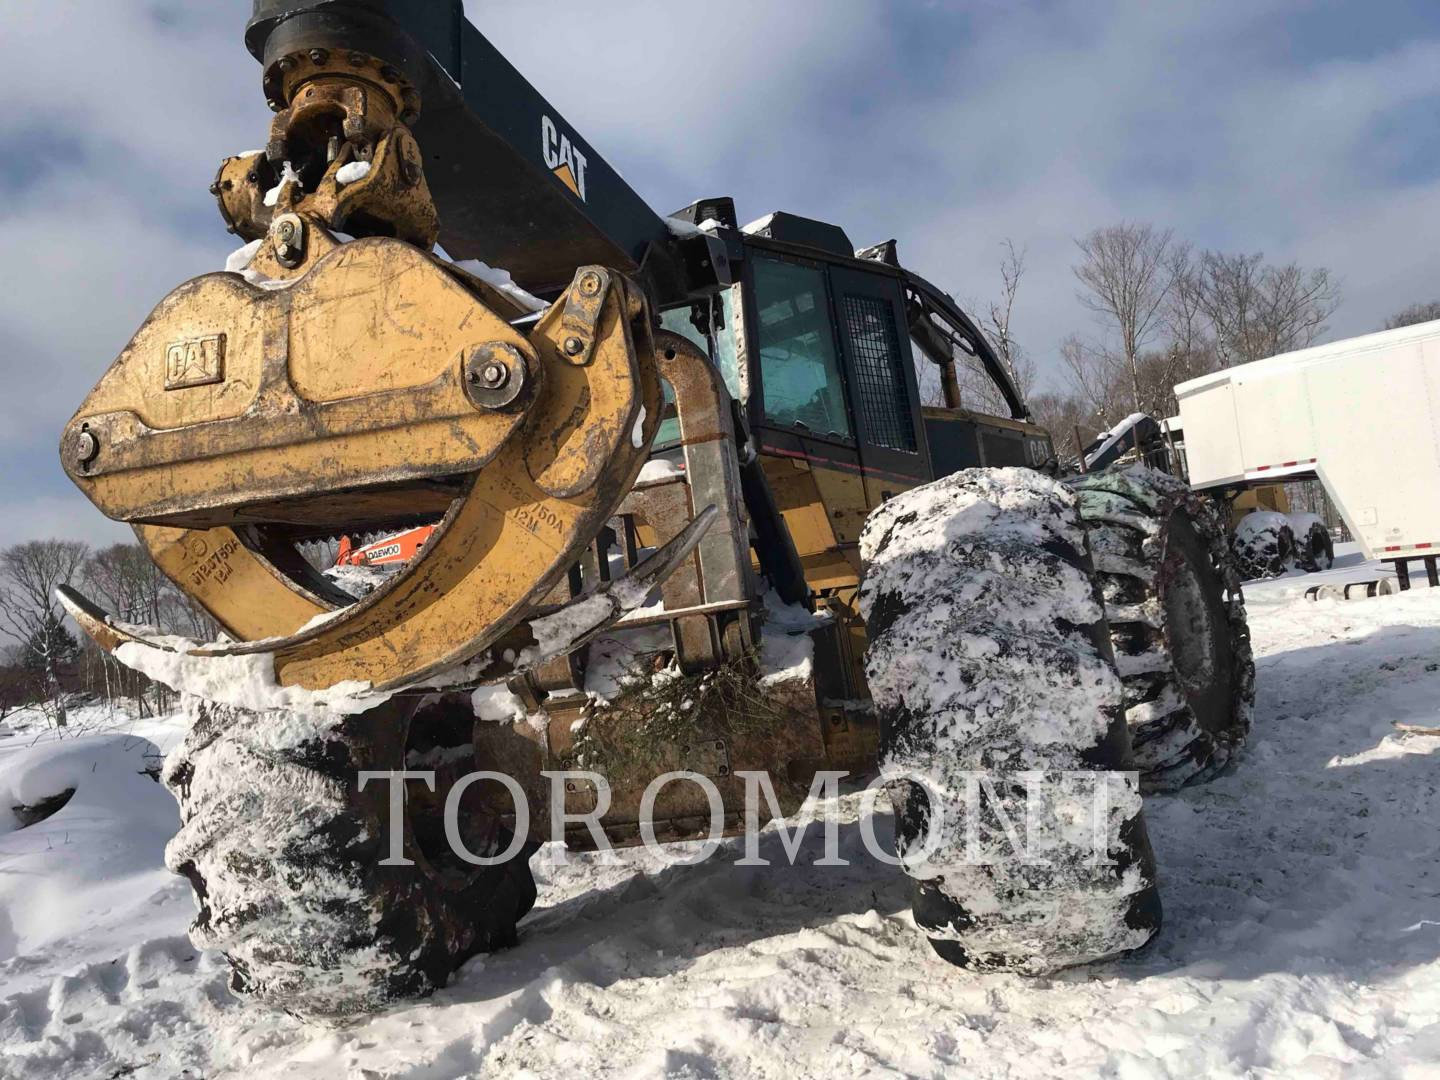 Used Heavy Equipment - 2005 CATERPILLAR 525B | Forest Products